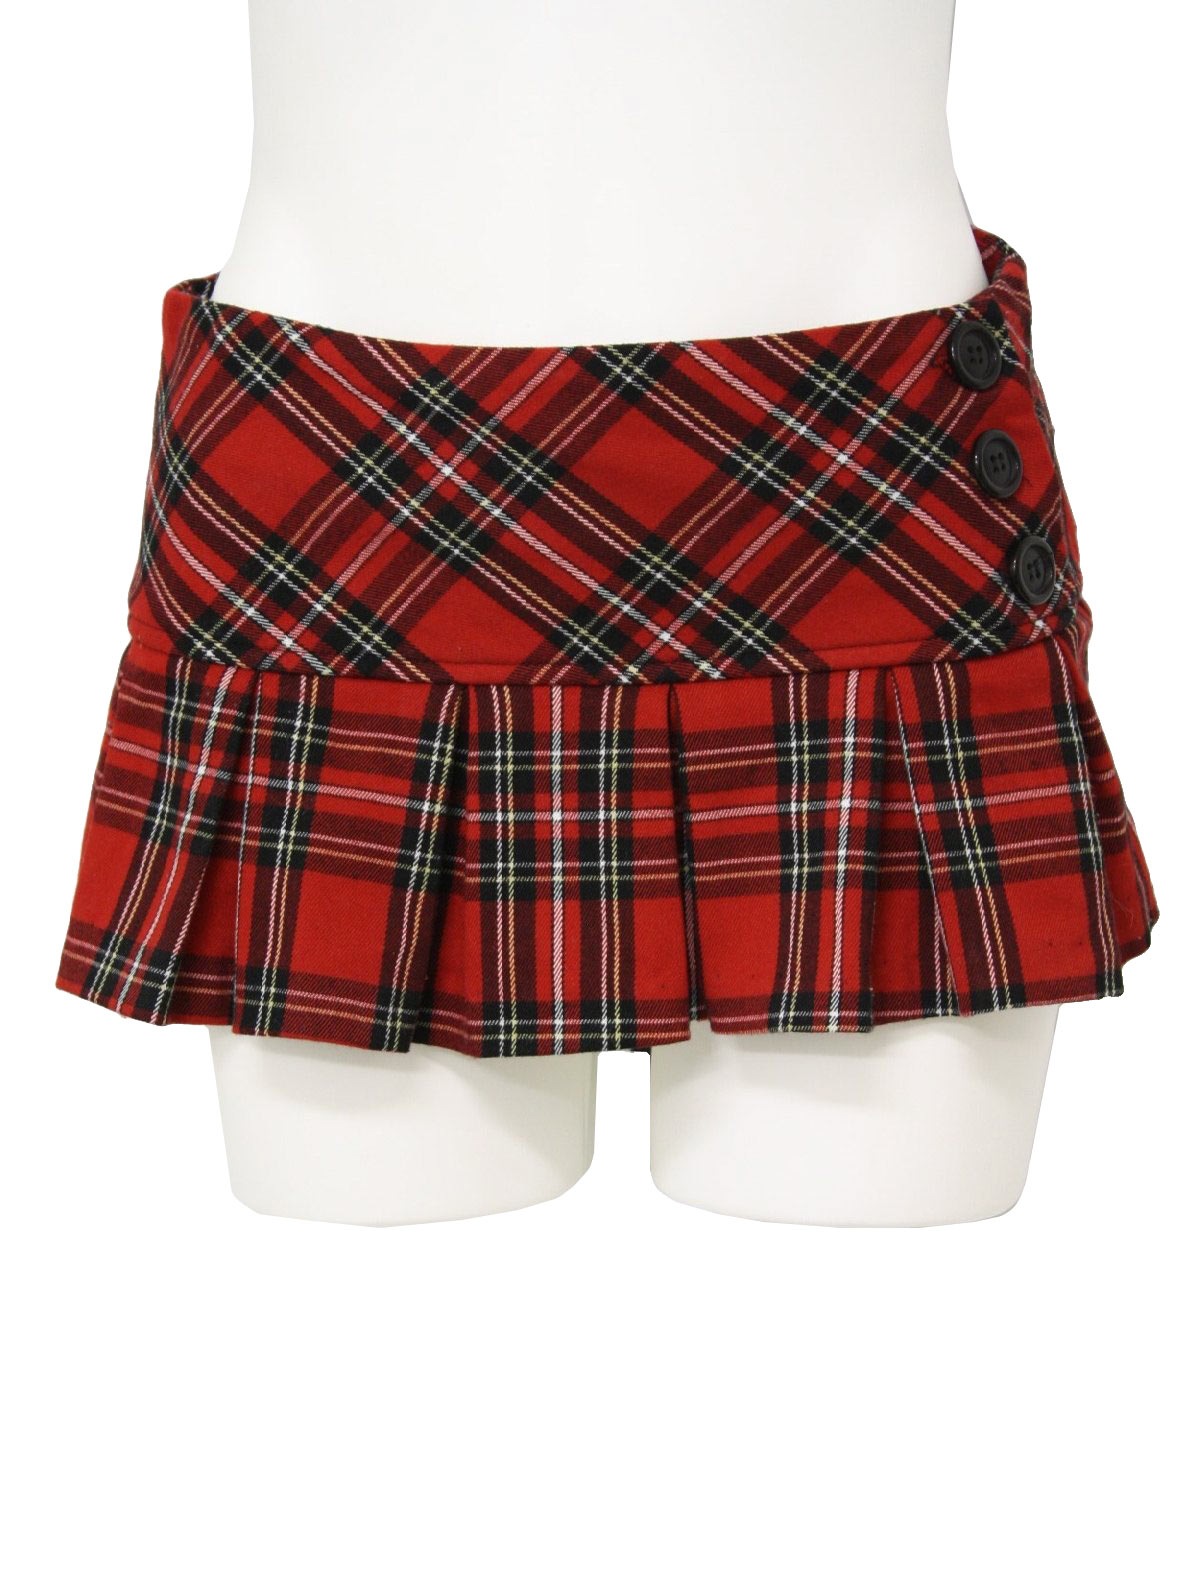 Retro 1990s Plaid Mini Skirt: 90s -Styles- Womens black, red ...